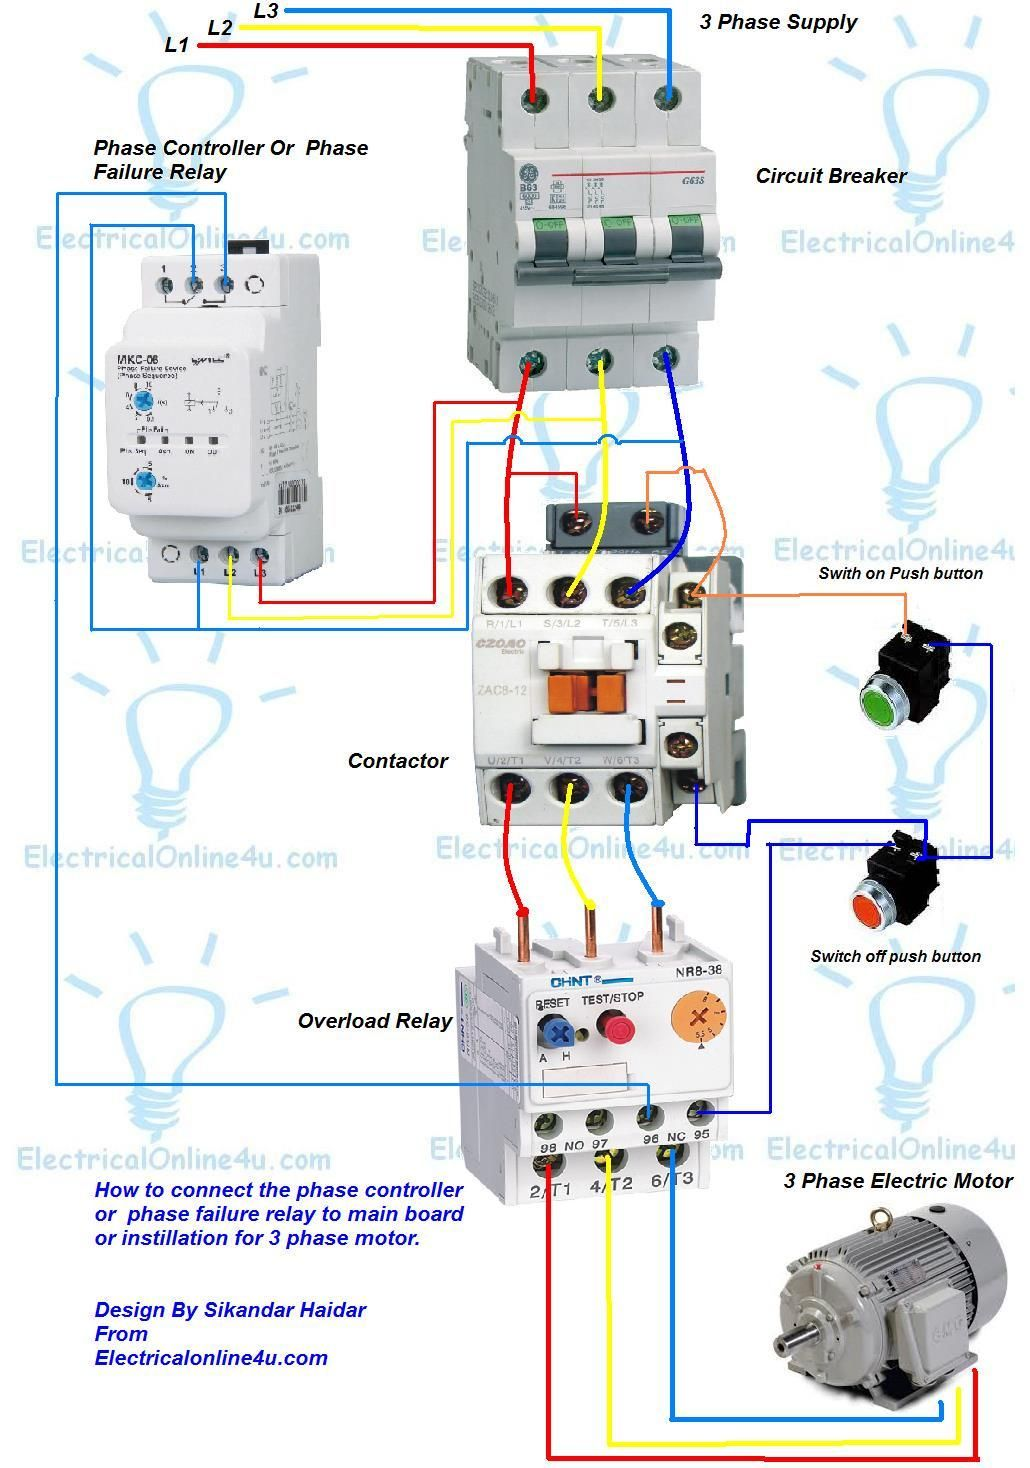 medium resolution of phase controller wiring phase failure relay diagram di on line 3 phase water pump control panel wiring diagram 3 phase control panel wiring